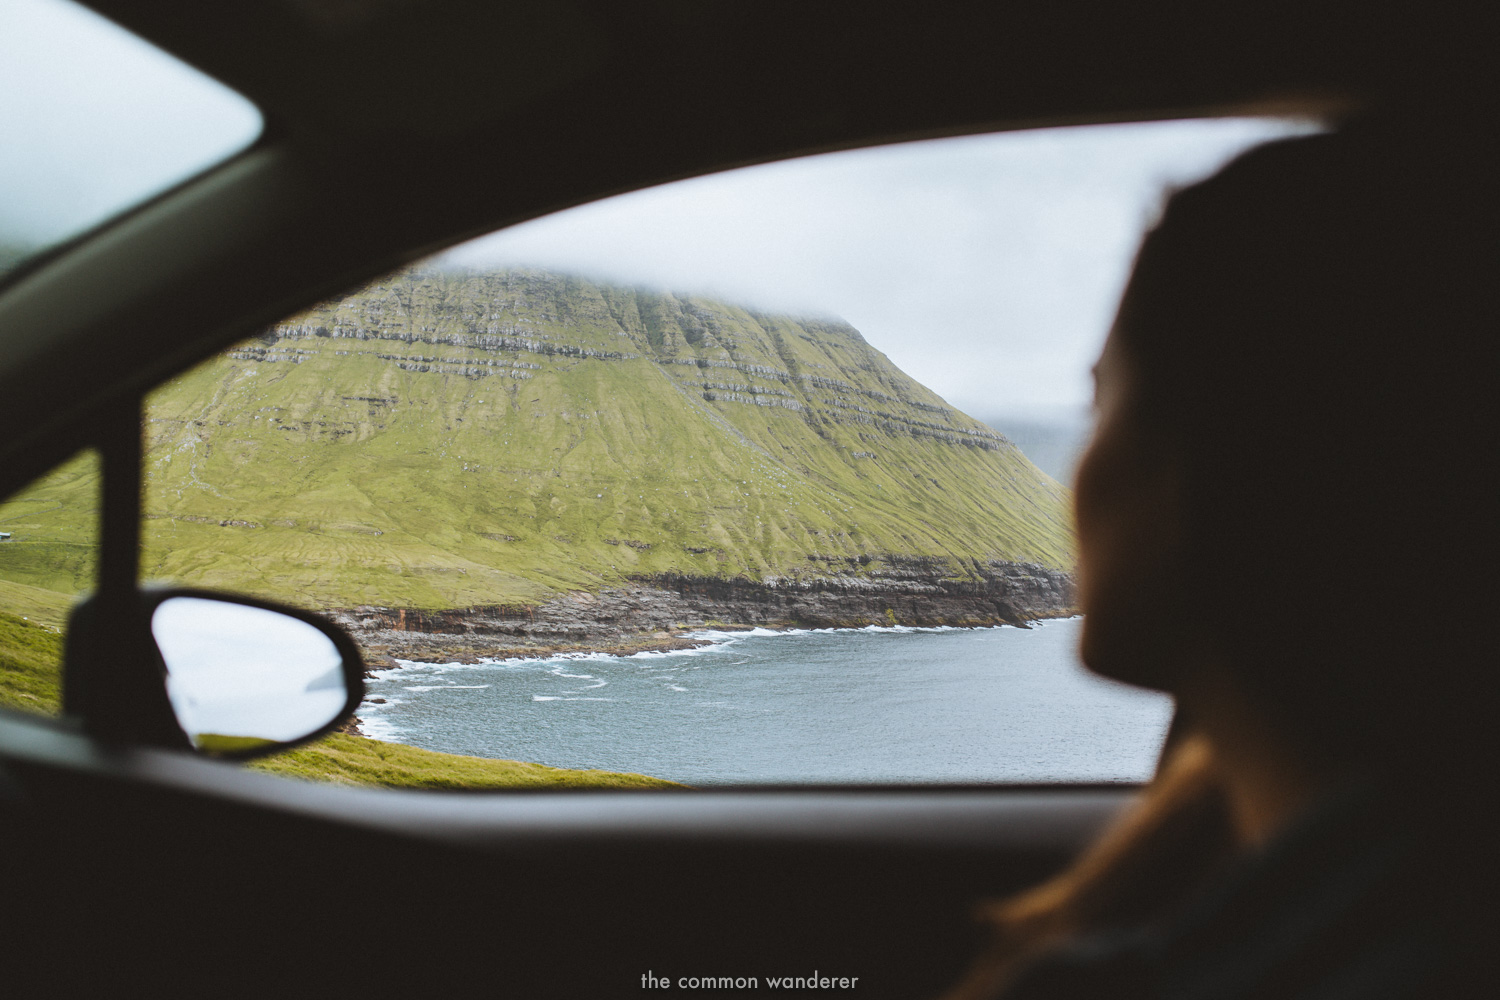 The Common Wanderer_-Faroe Islands 18.jpg